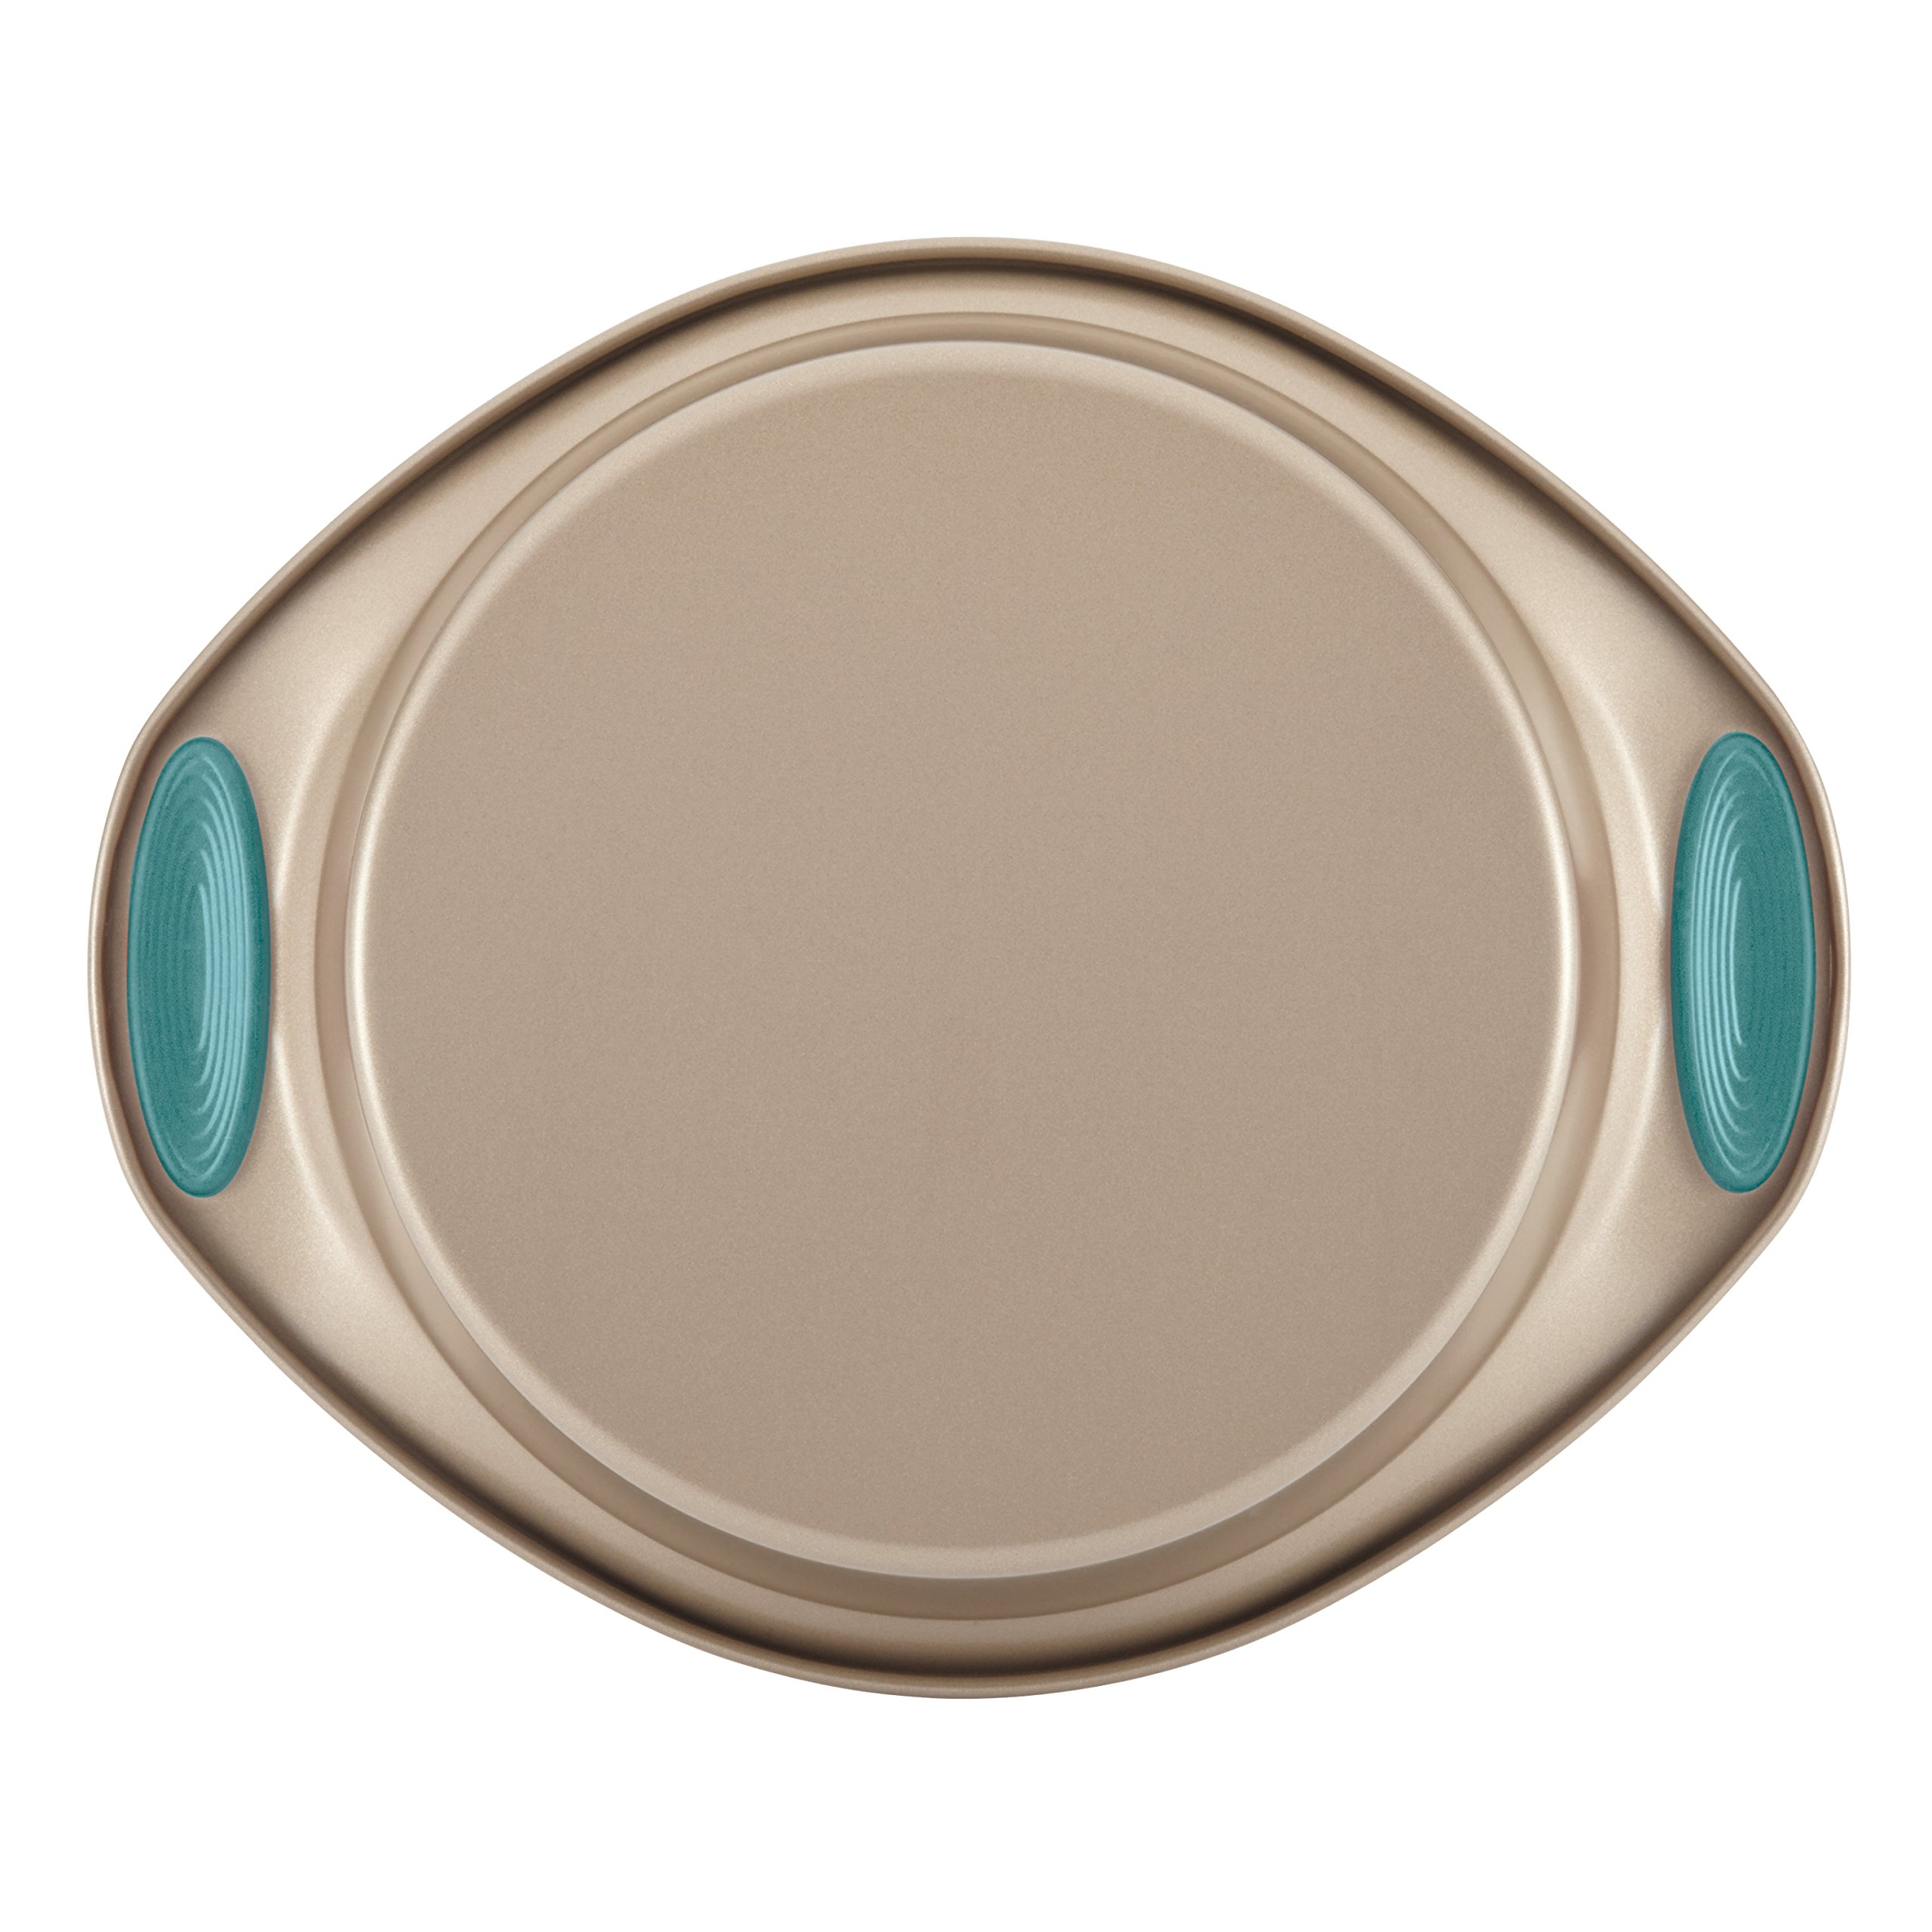 Rachael Ray Nonstick Bakeware 5-Piece Set, Latte Brown with Agave Blue Handle Grips by Rachael Ray (Image #5)